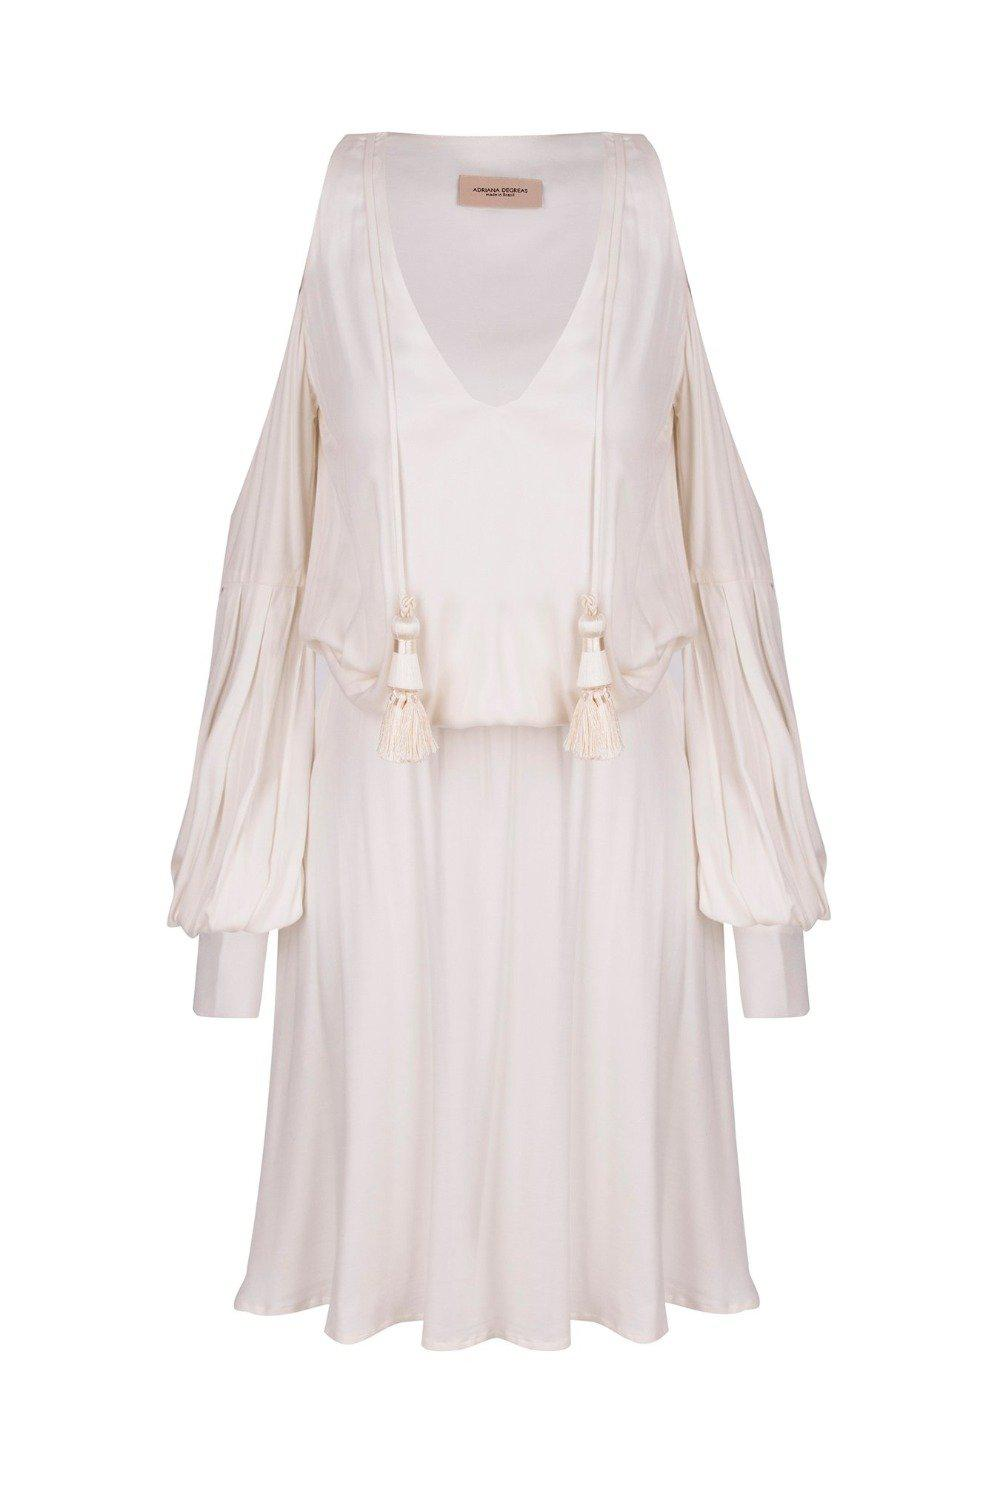 Horse Skin Solid Short Dress with Bare shoulders and Tassels